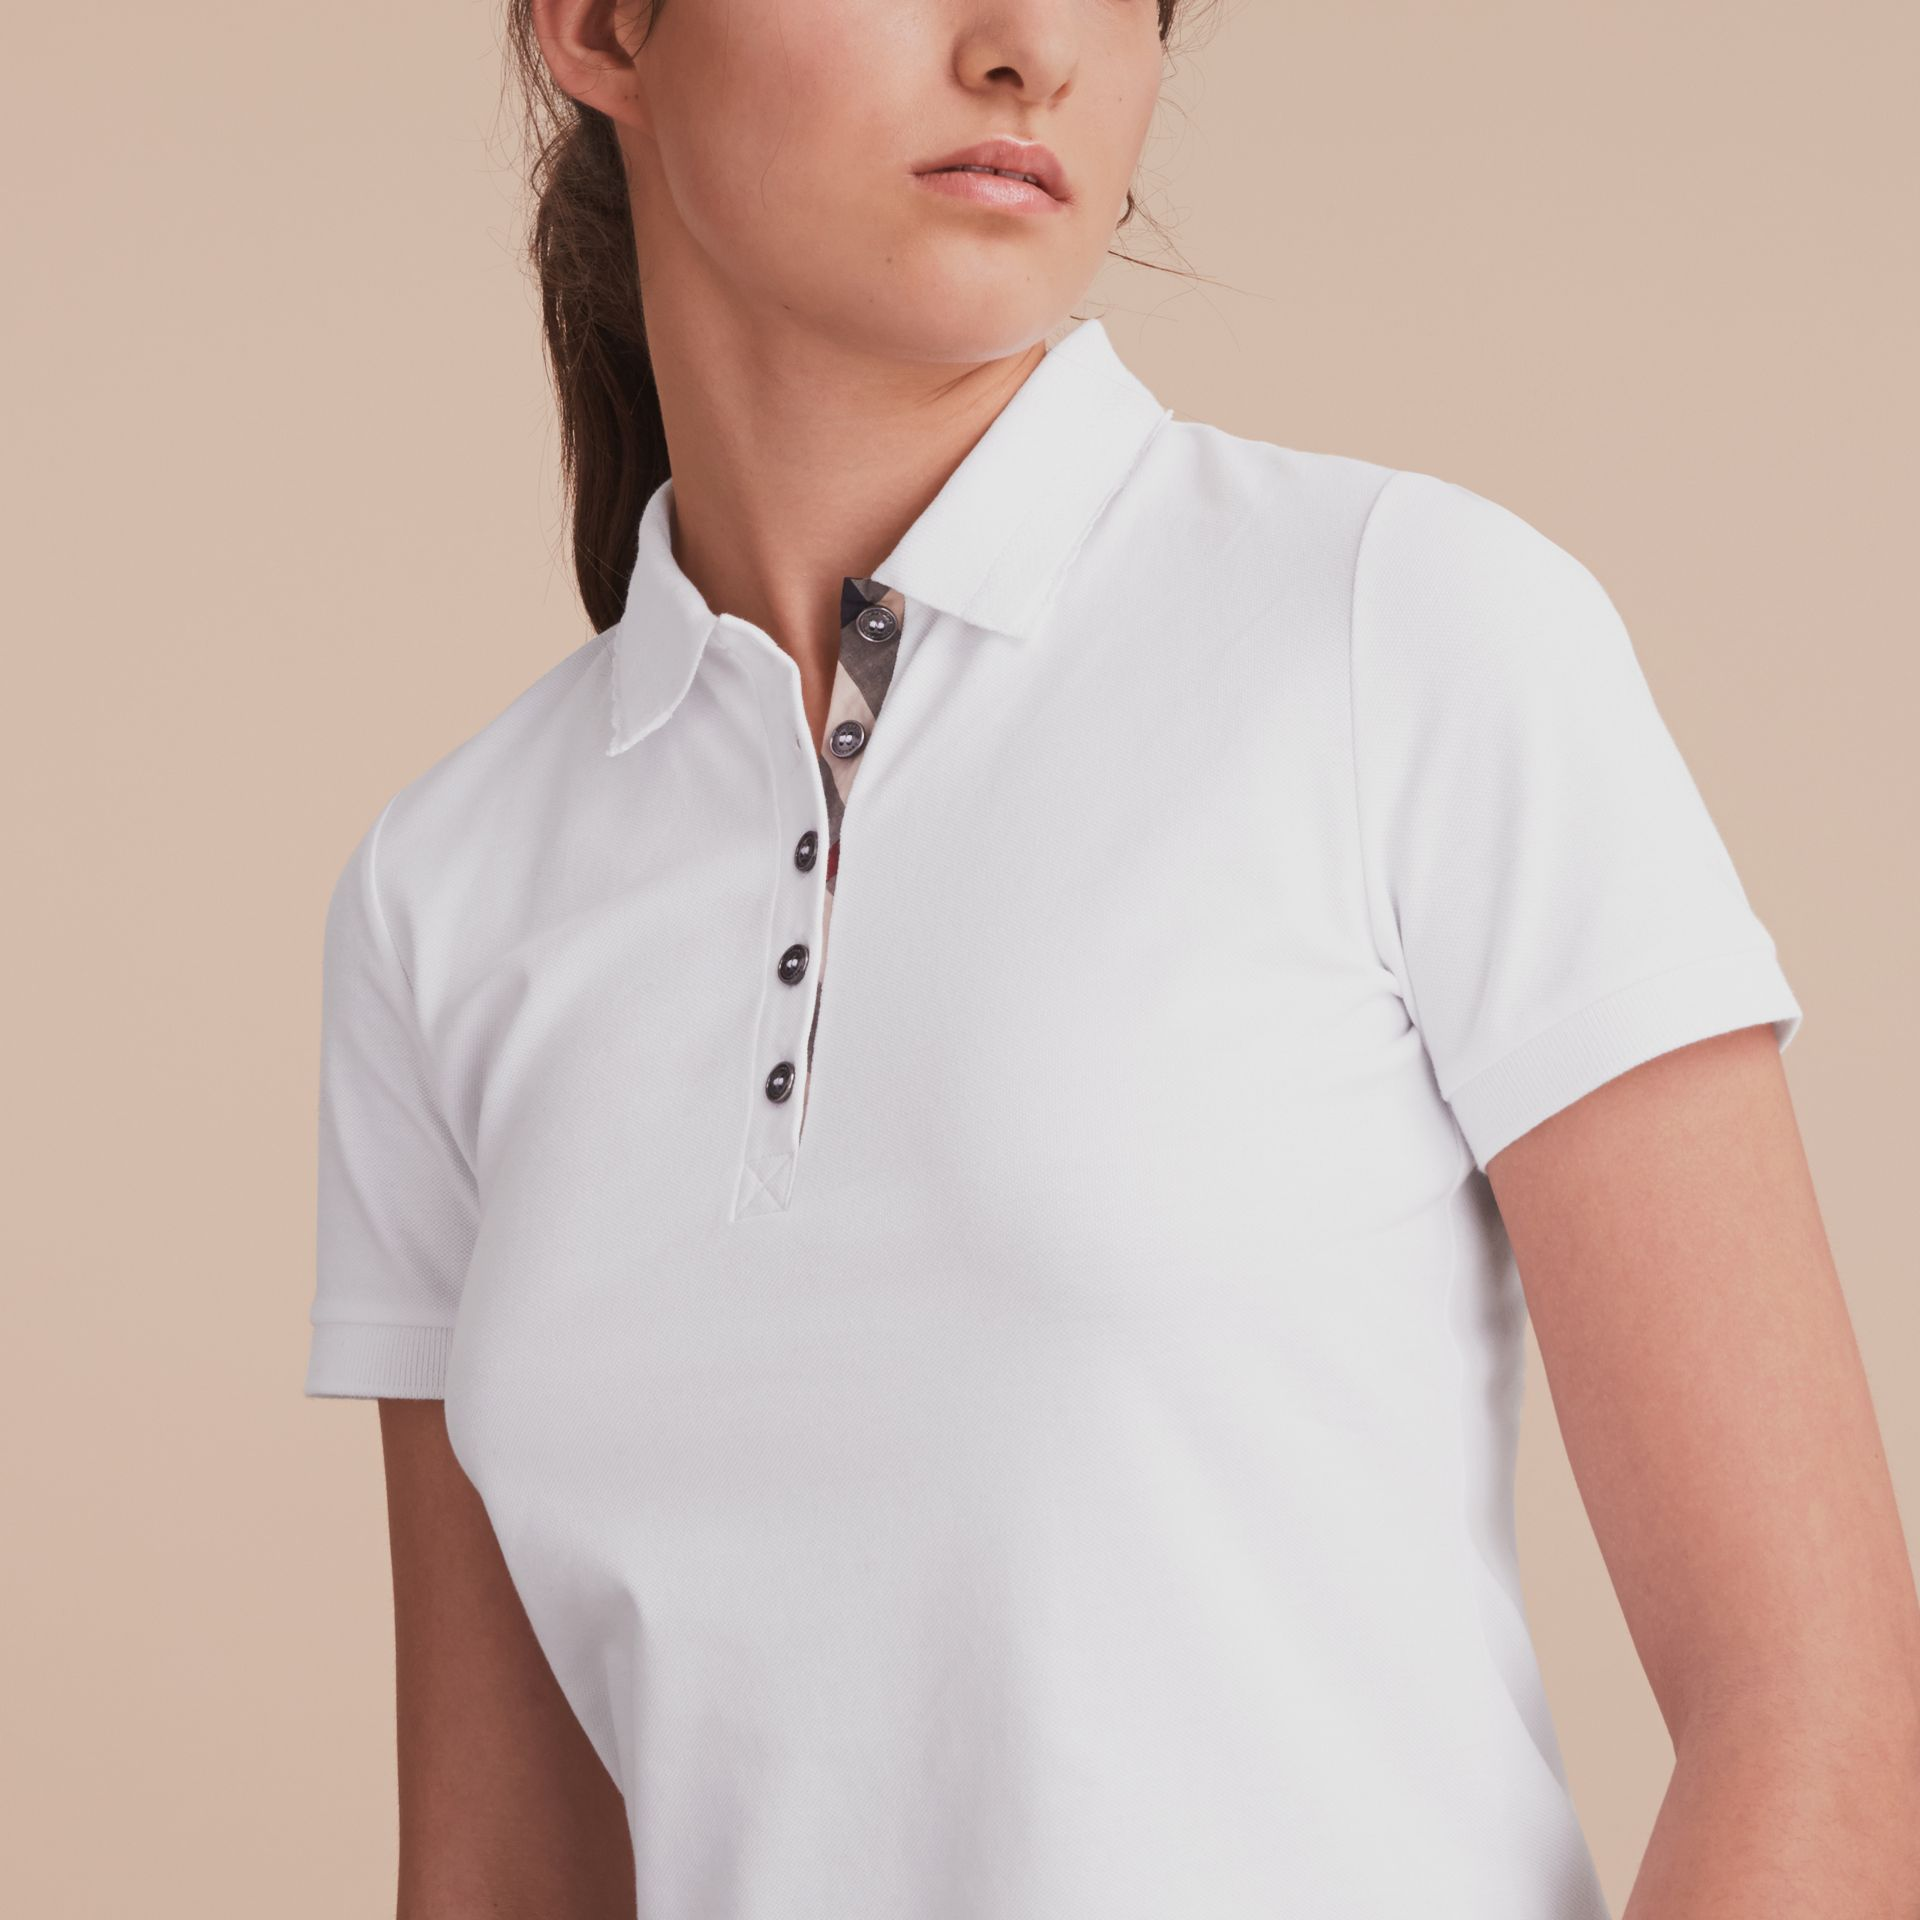 Lace Trim Cotton Blend Polo Shirt with Check Detail in White - Women | Burberry - gallery image 5